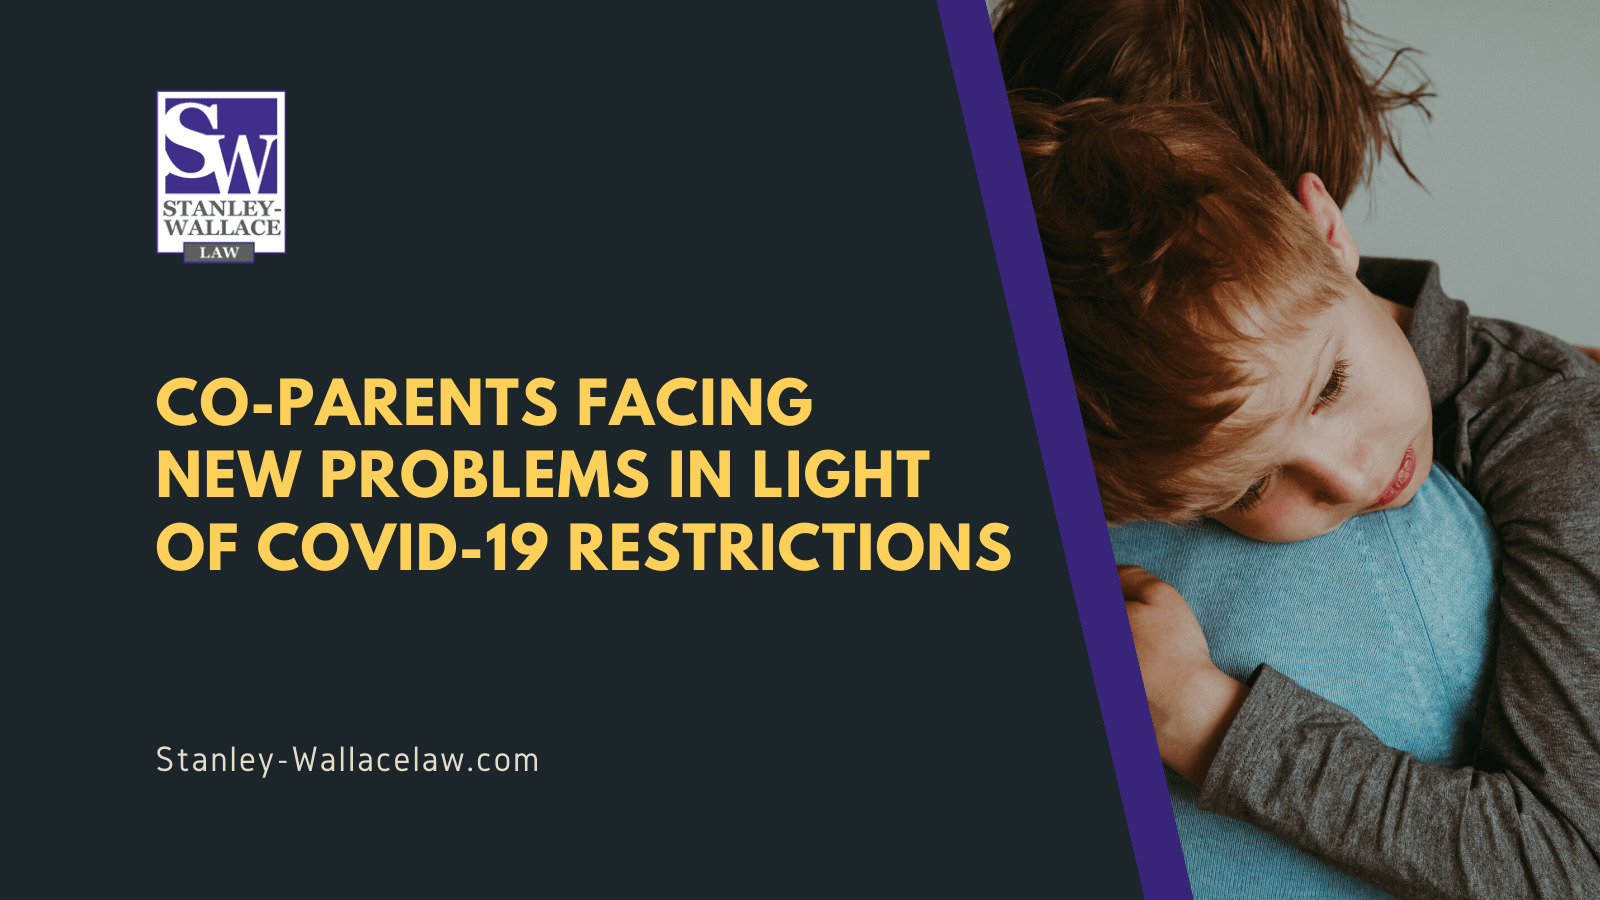 Co-Parents Facing New Problems in Light of COVID-19 Restrictions - Stanley-Wallace Law - slidell louisiana